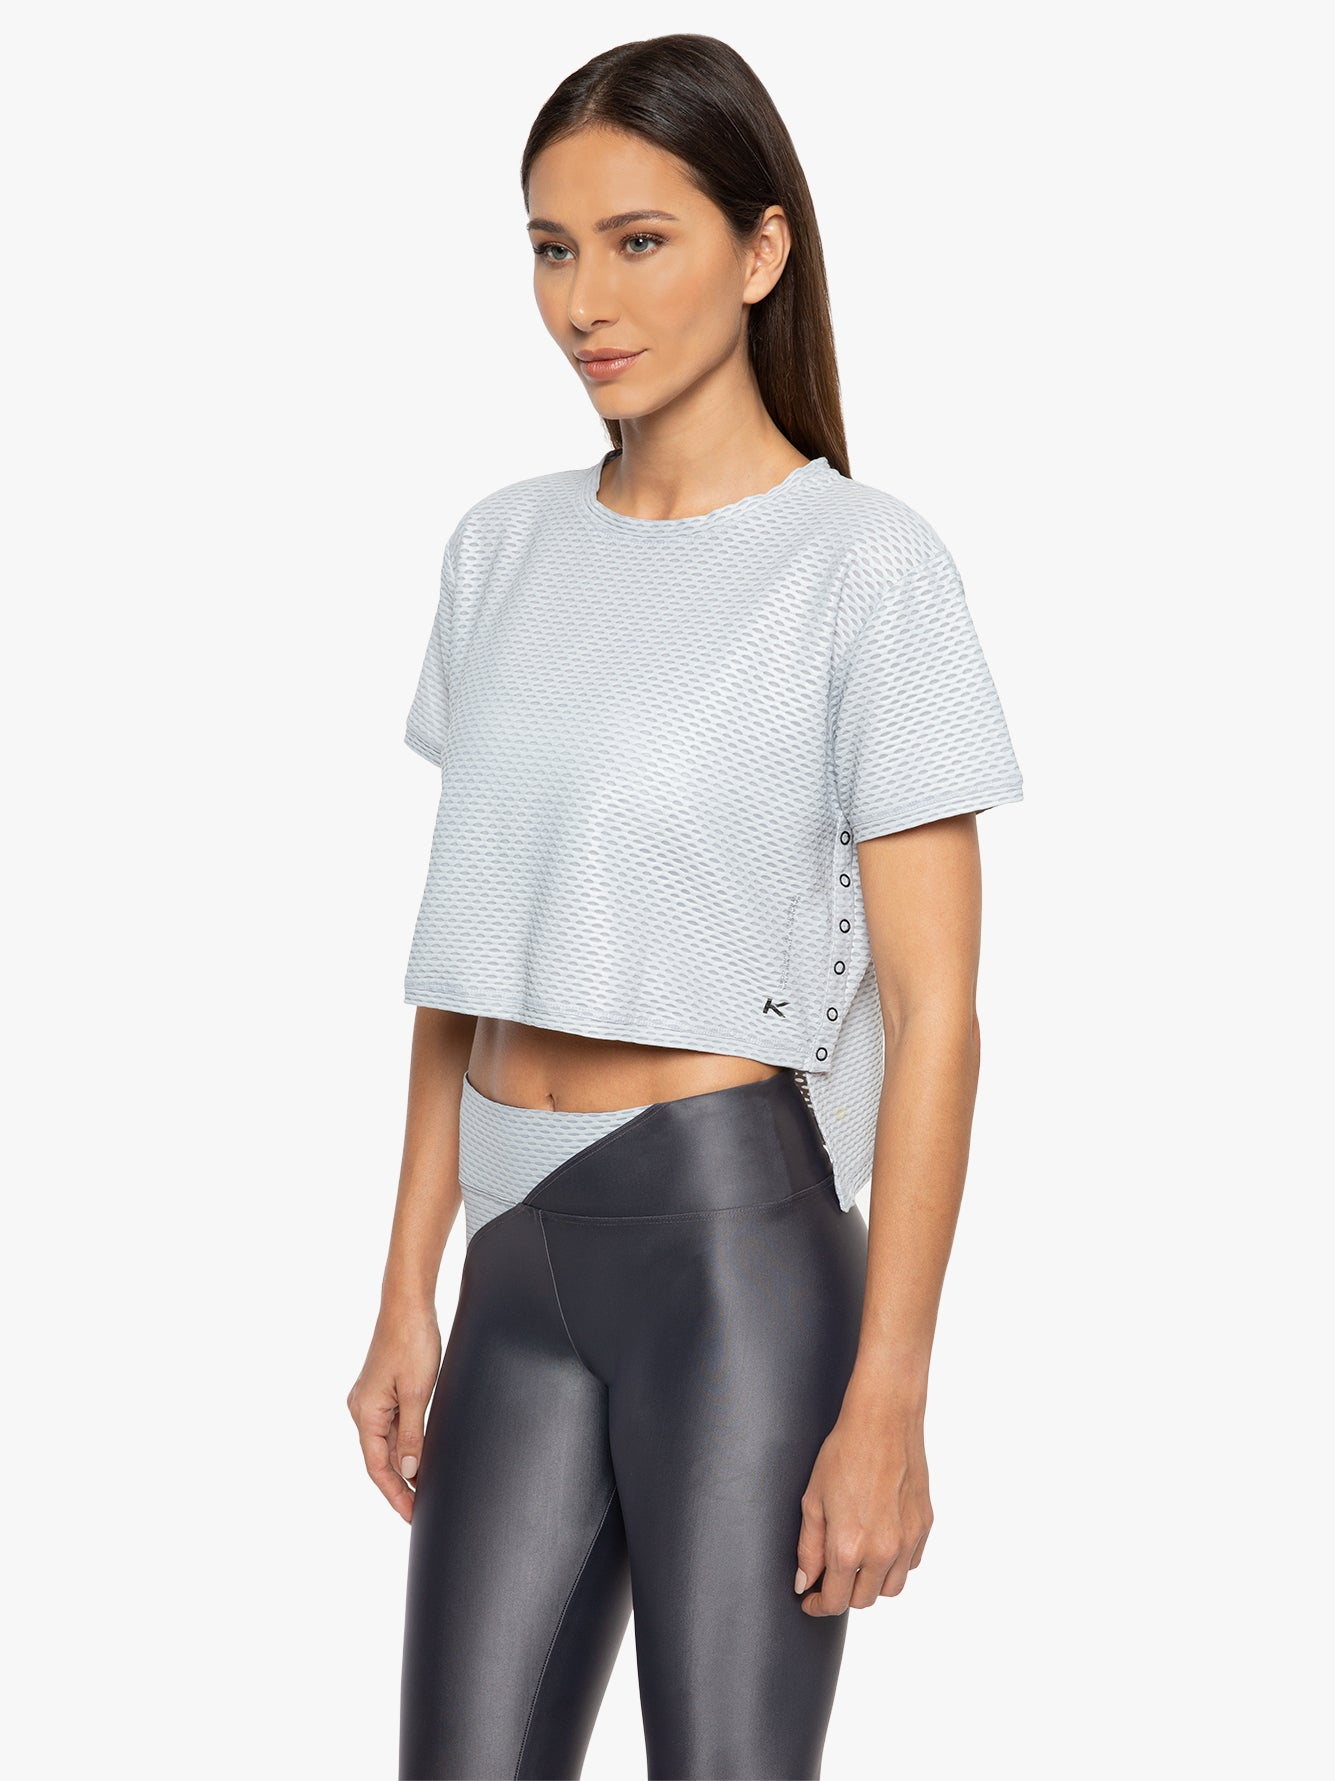 Cruppo Netz Crop Top - Agate